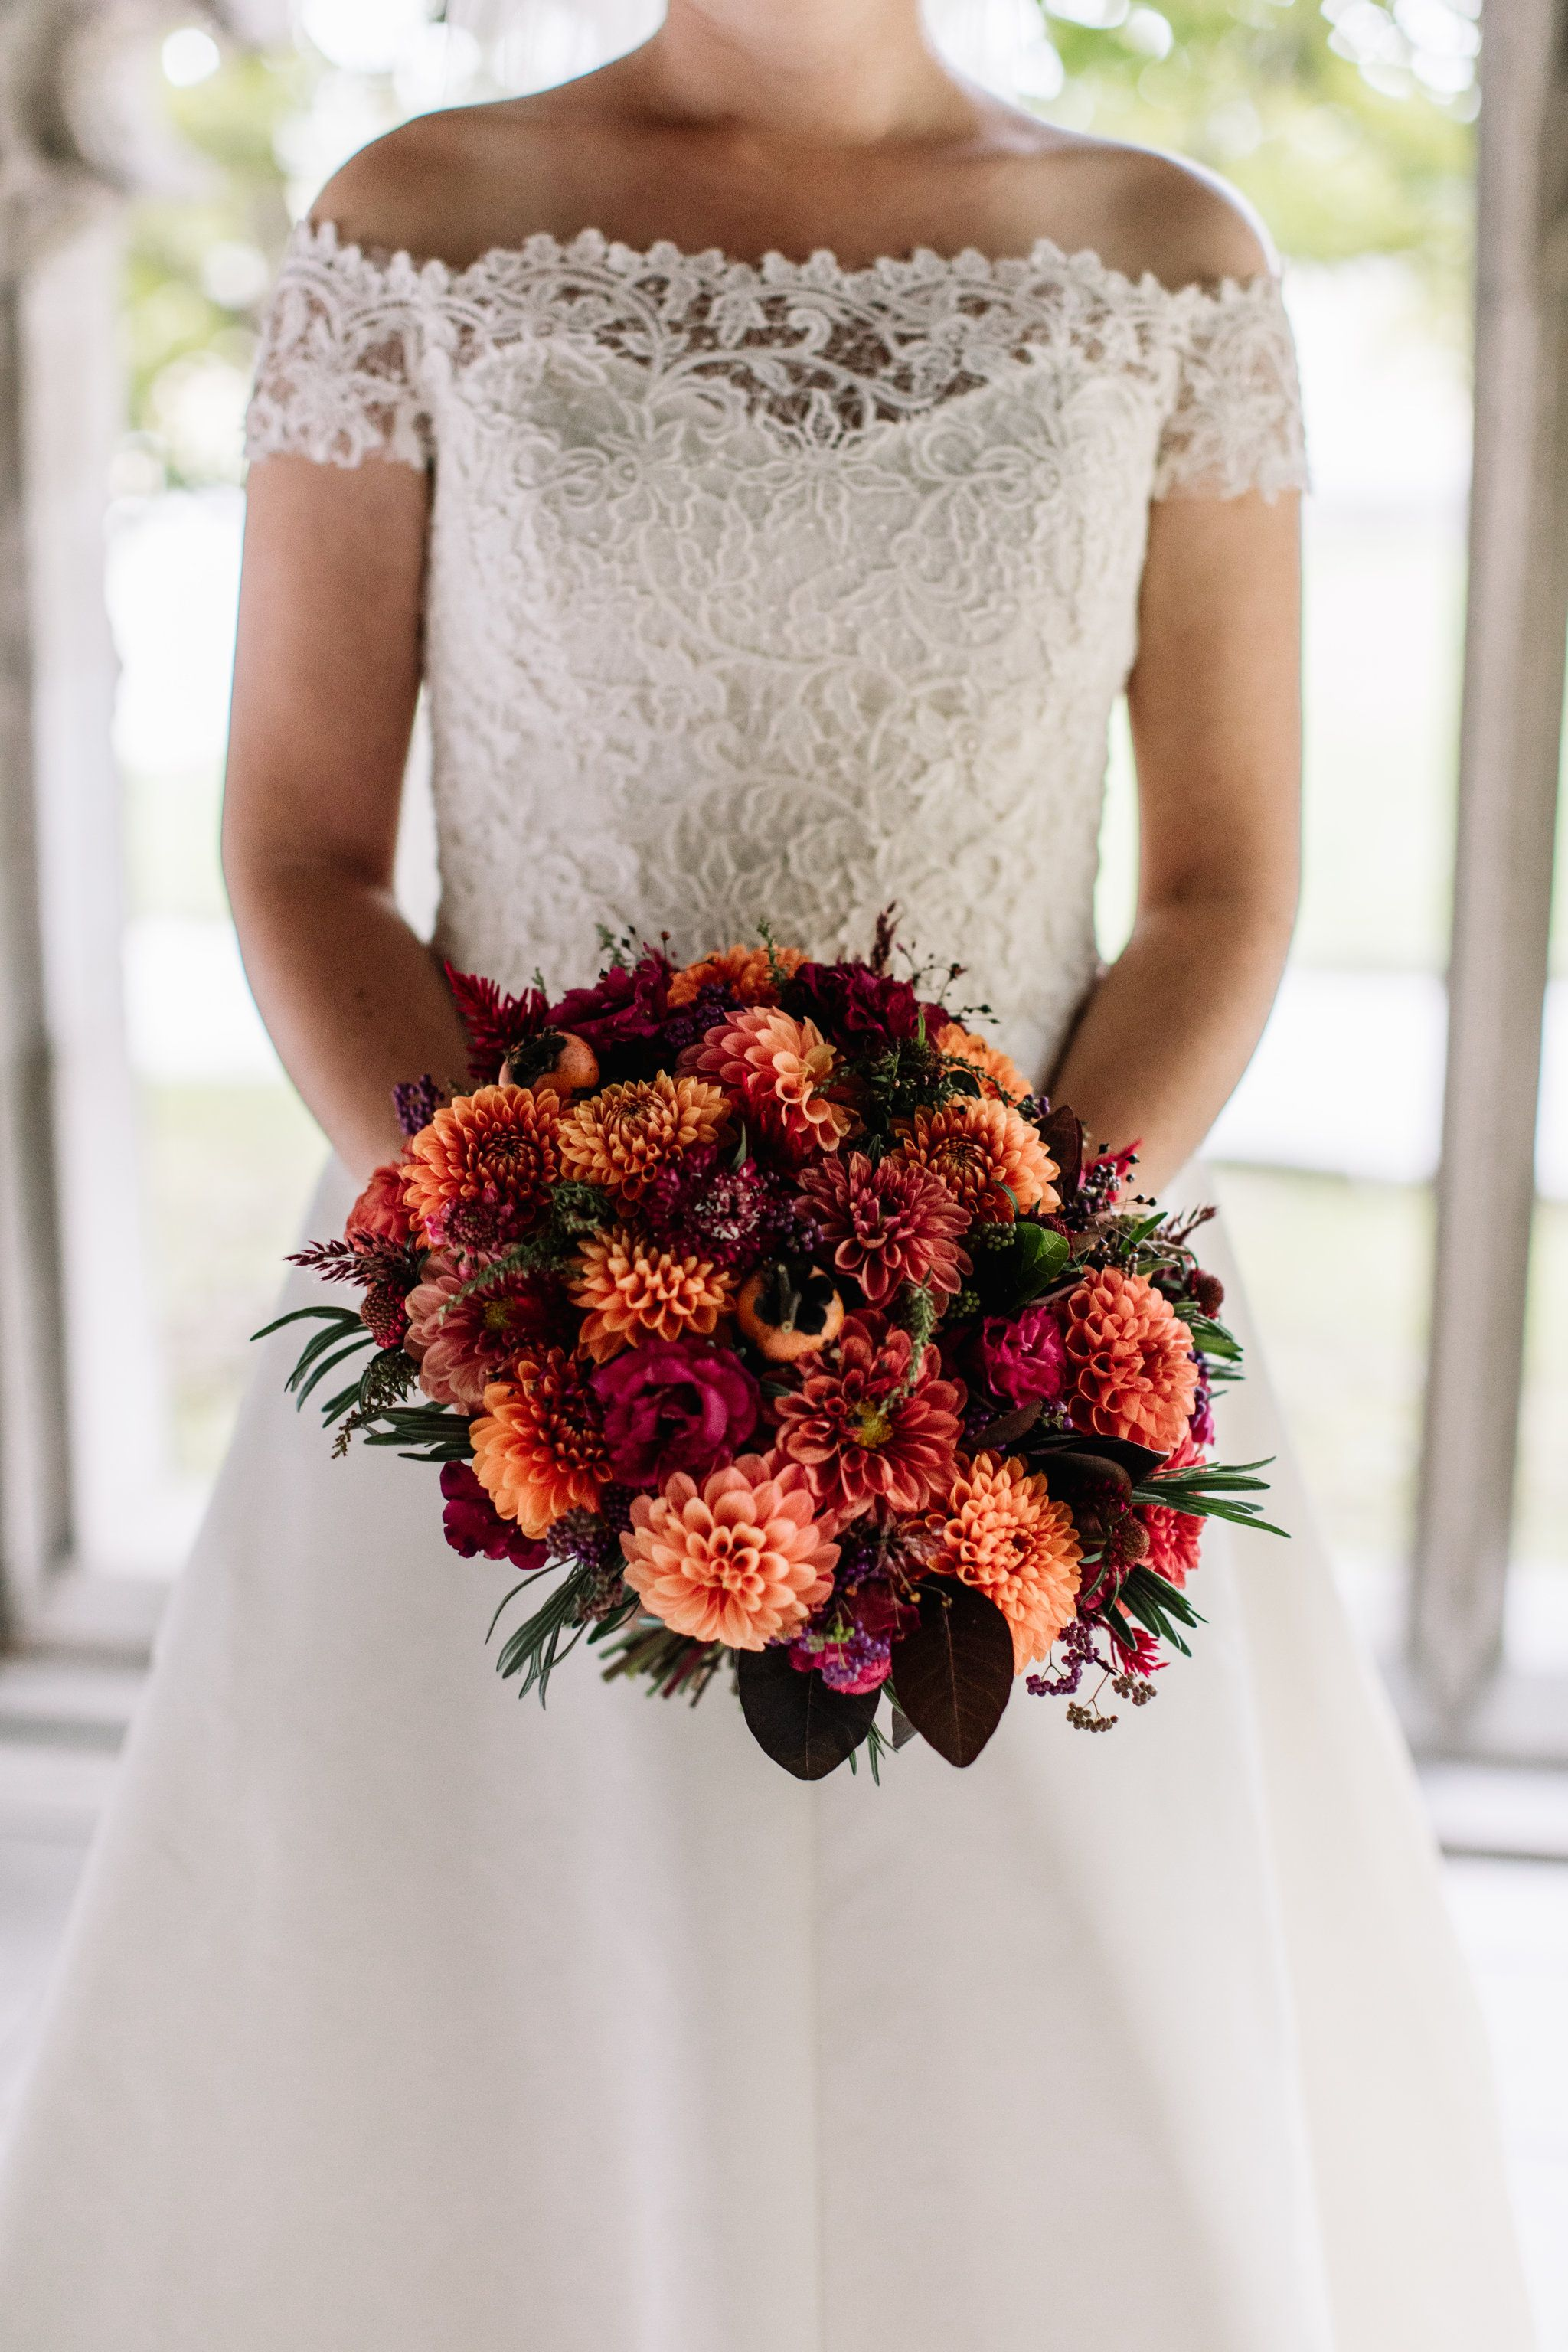 Autumn Bridal Bouquet Full Of Dahlias And Persimmons Grown And Designed By Love N Fresh Chrysanthemum Bridal Chrysanthemum Bridal Bouquet Bridal Bouquet Fall